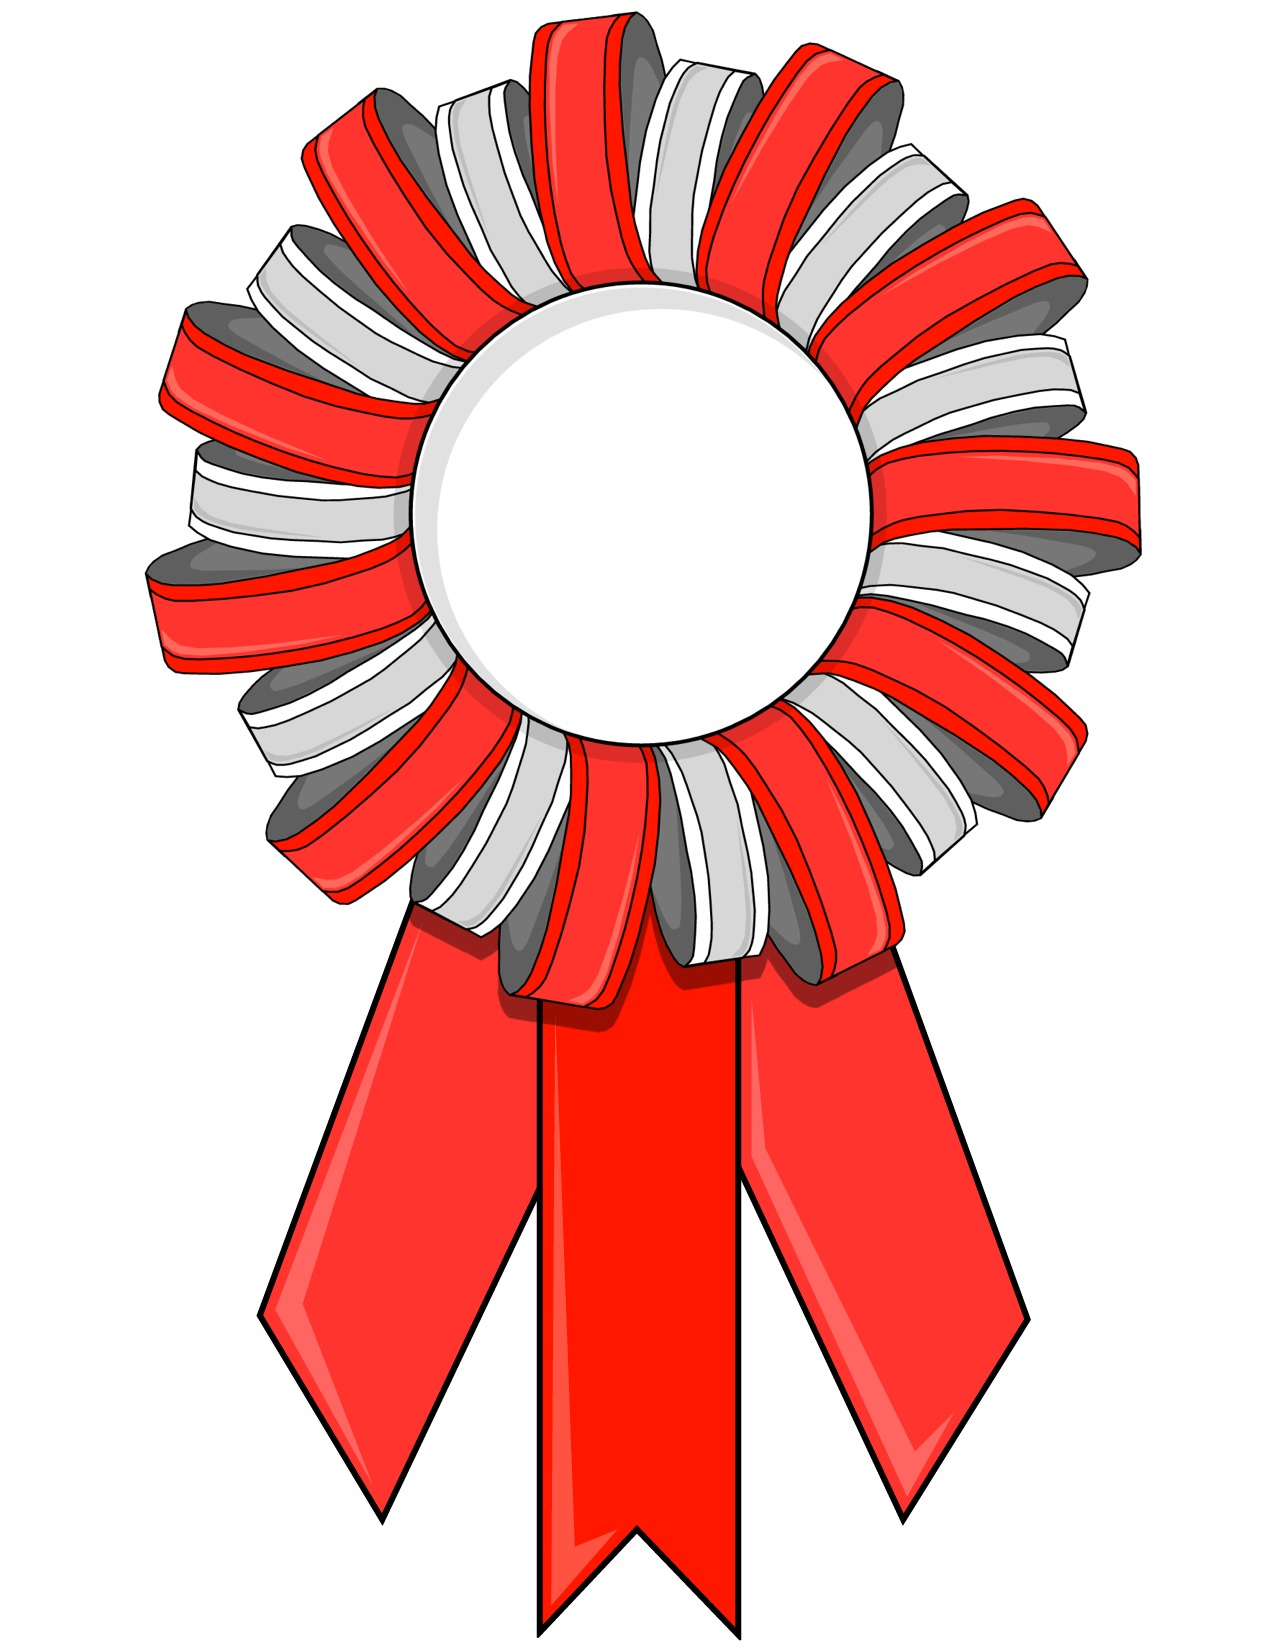 photo about Printable Ribbon named Printable Contest Ribbons or Match Ribbons